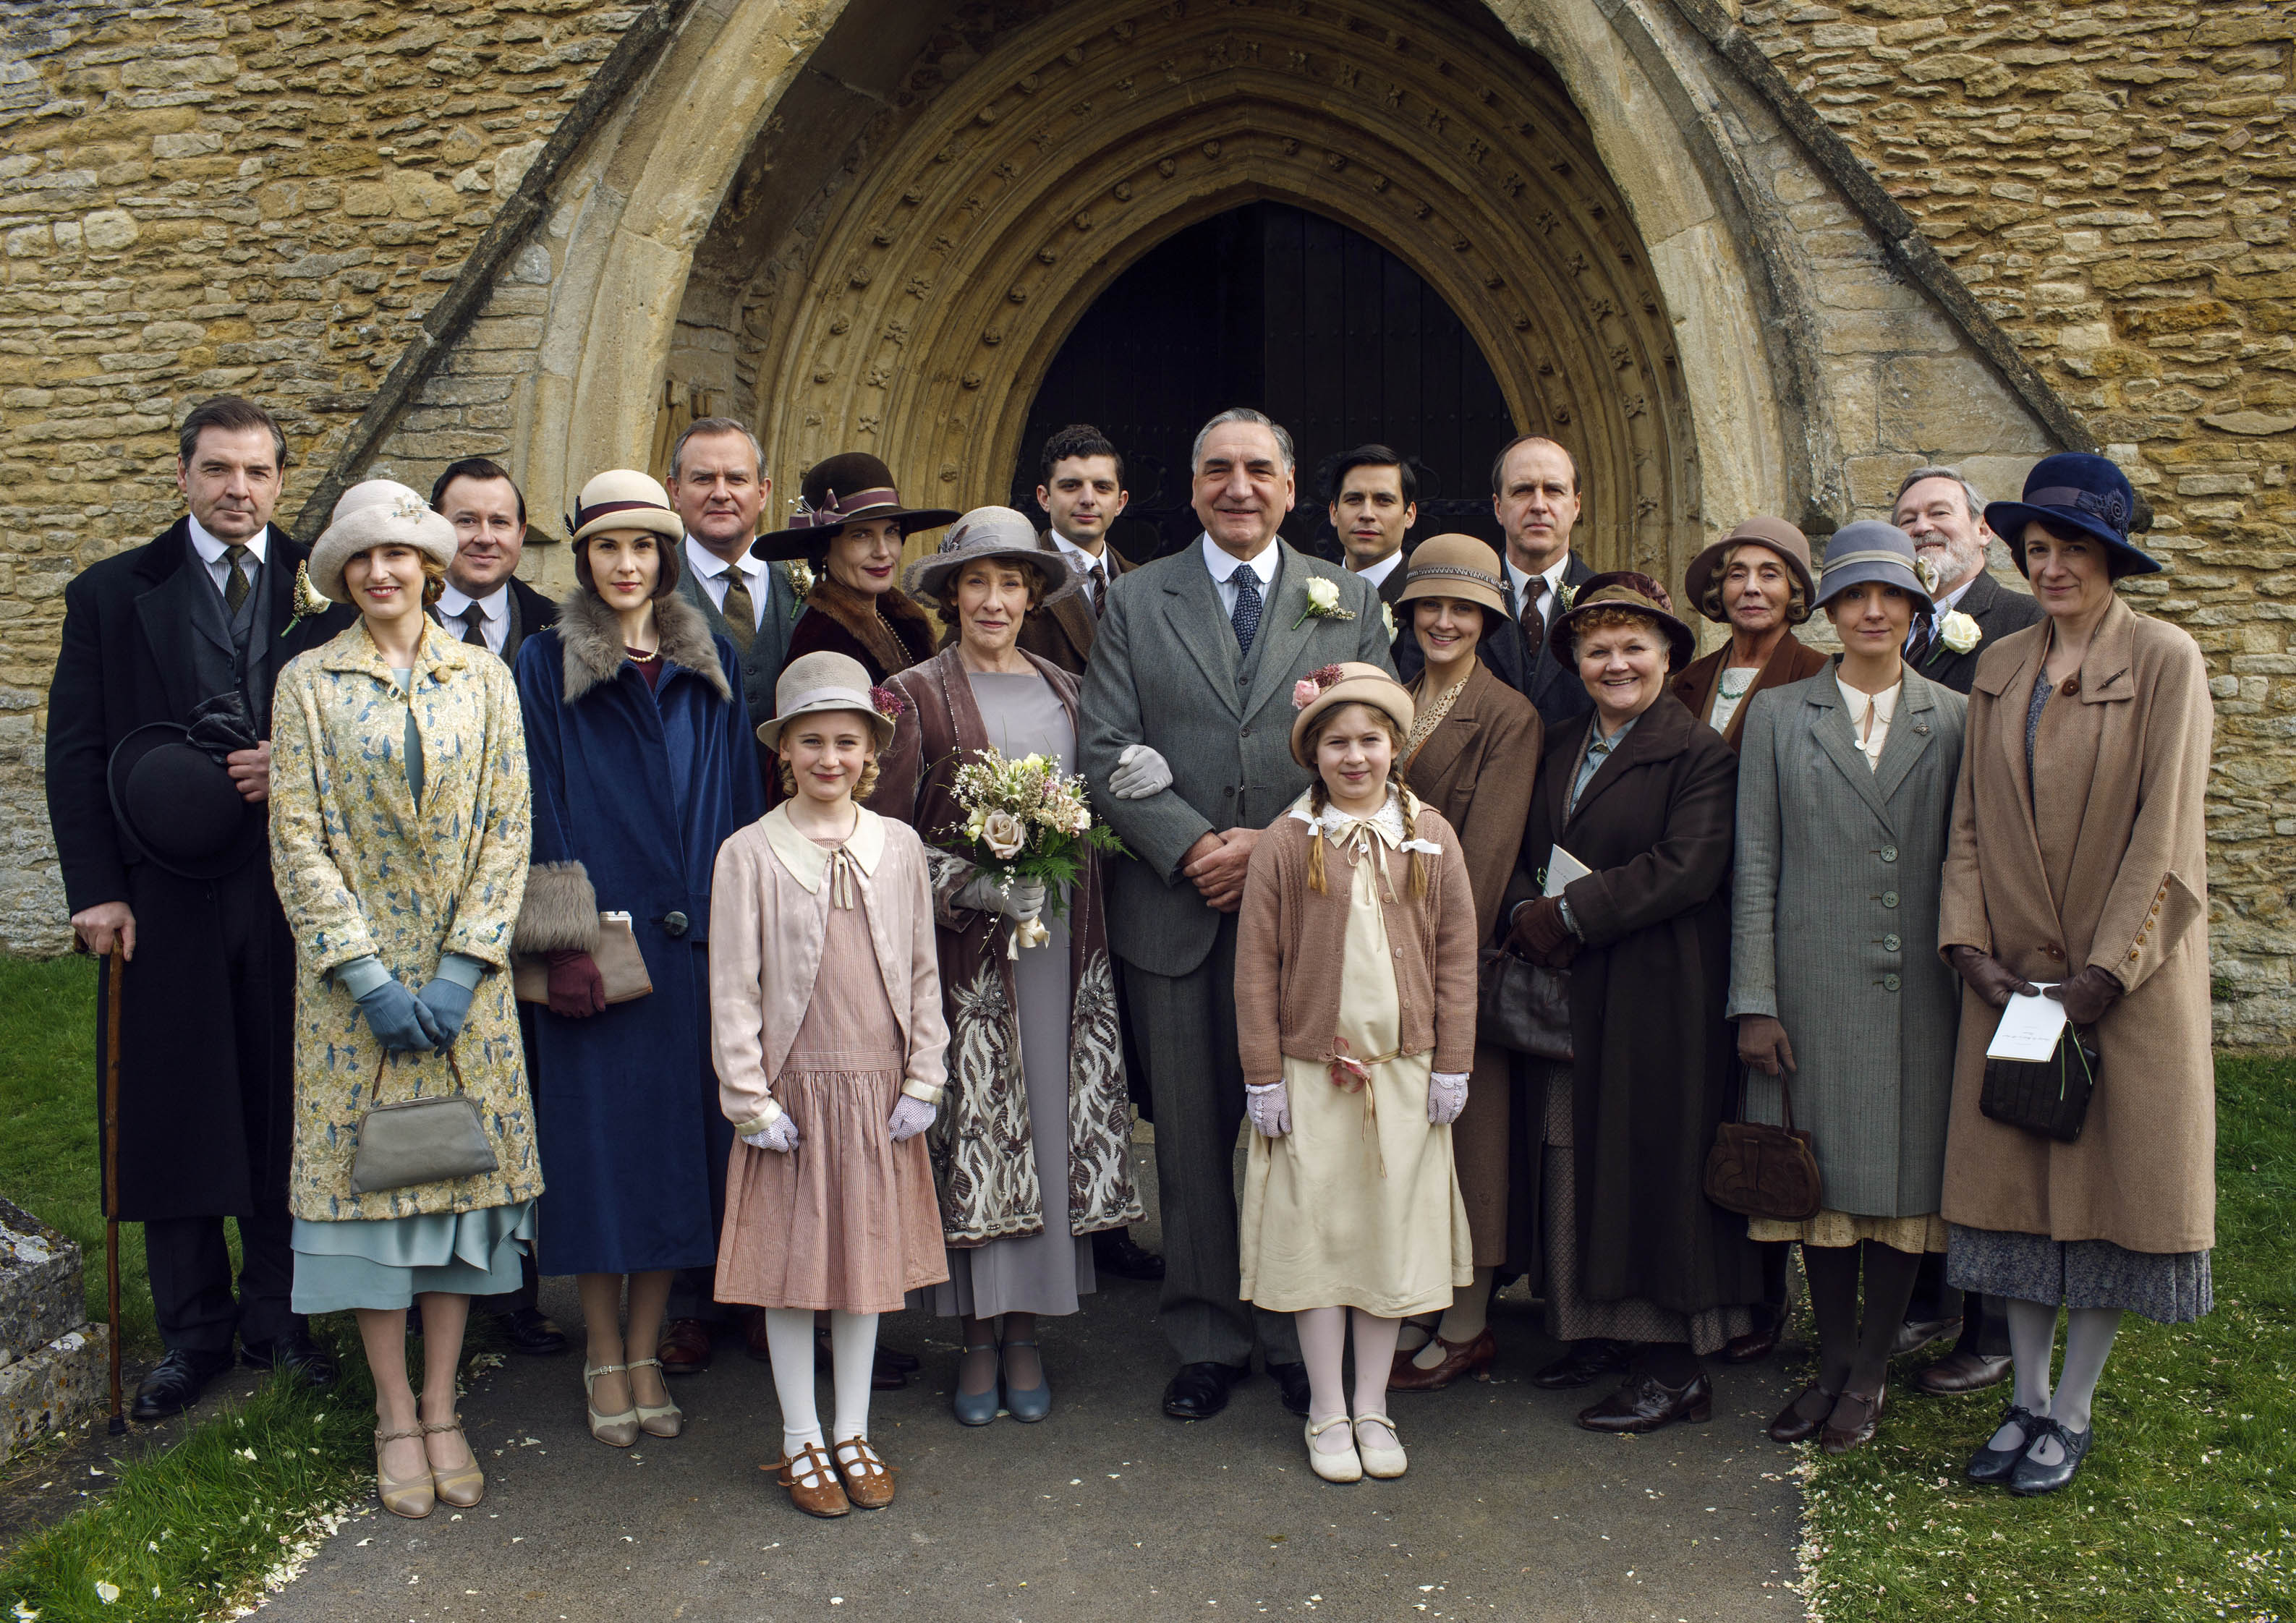 http://assets.heart.co.uk/2015/39/downton-abbey-on-set-filming-4-1443781091.jpg